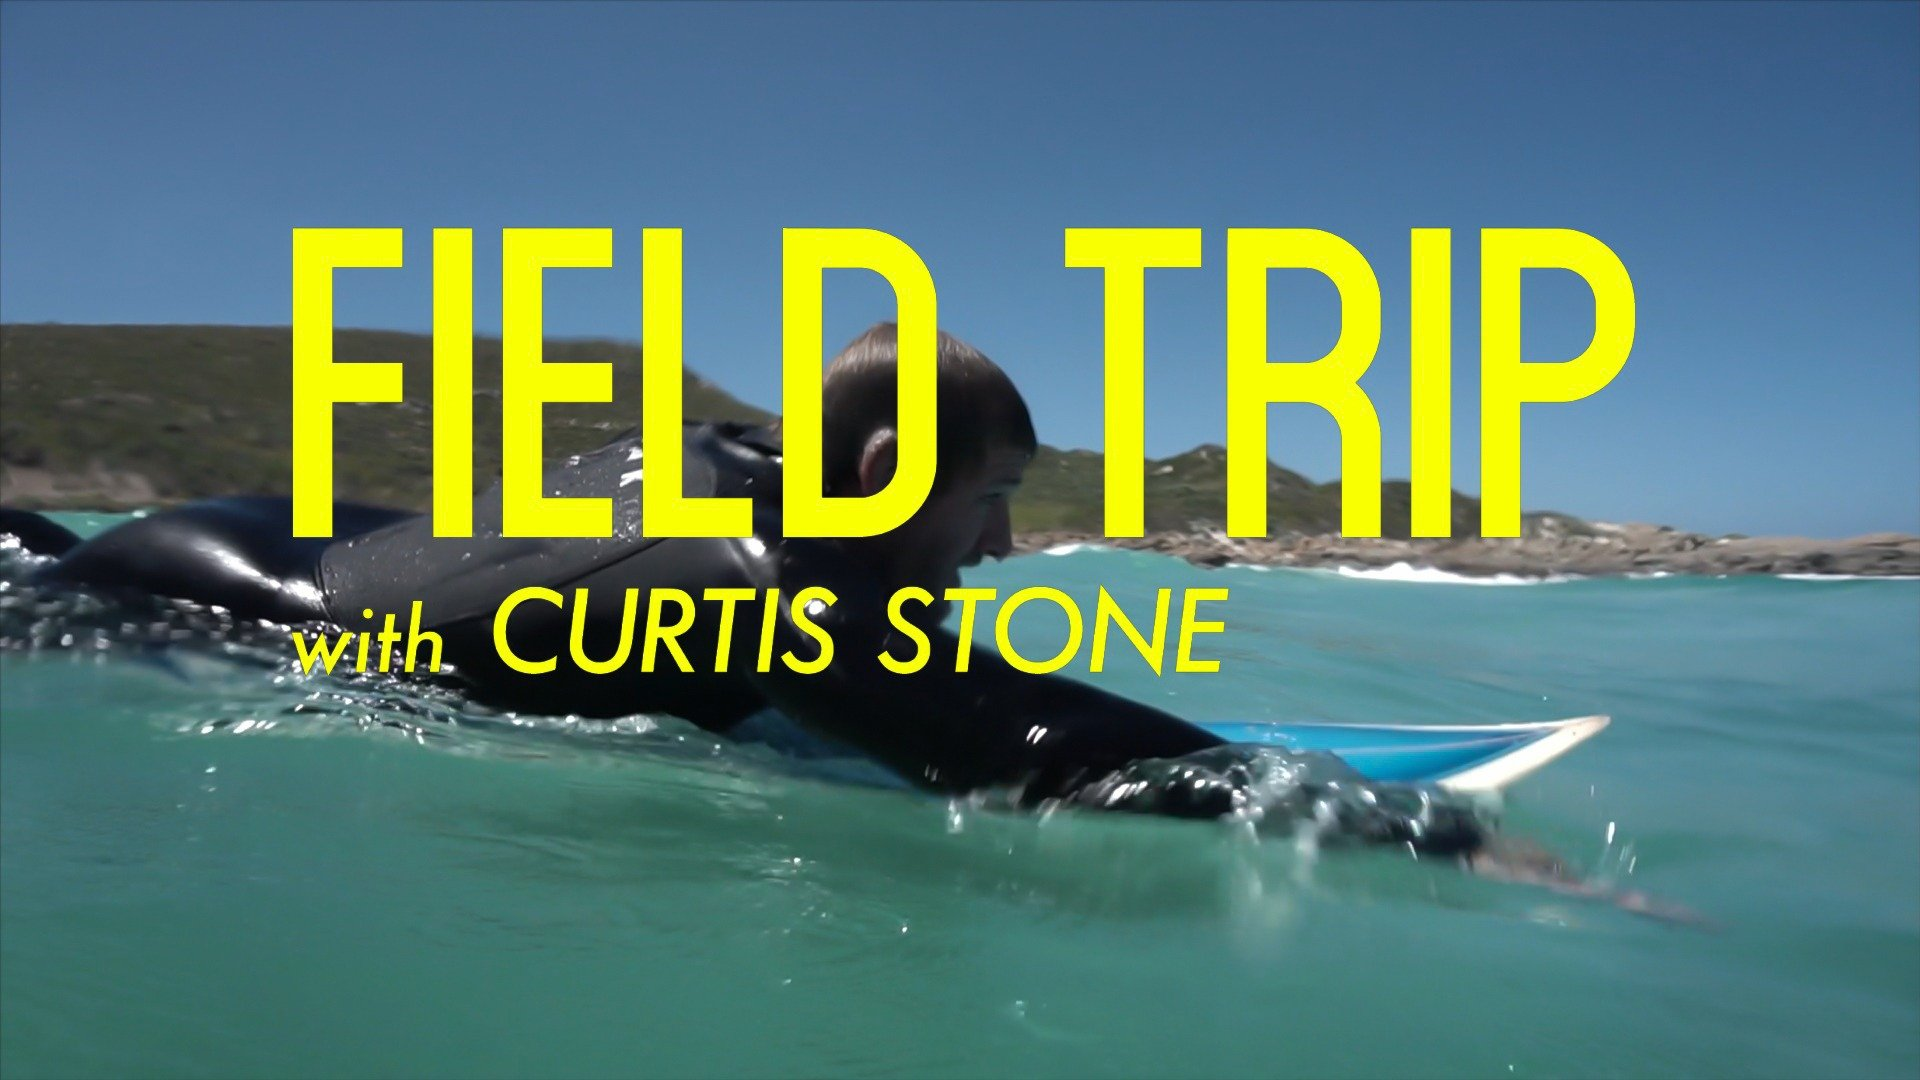 Field Trip With Curtis Stone